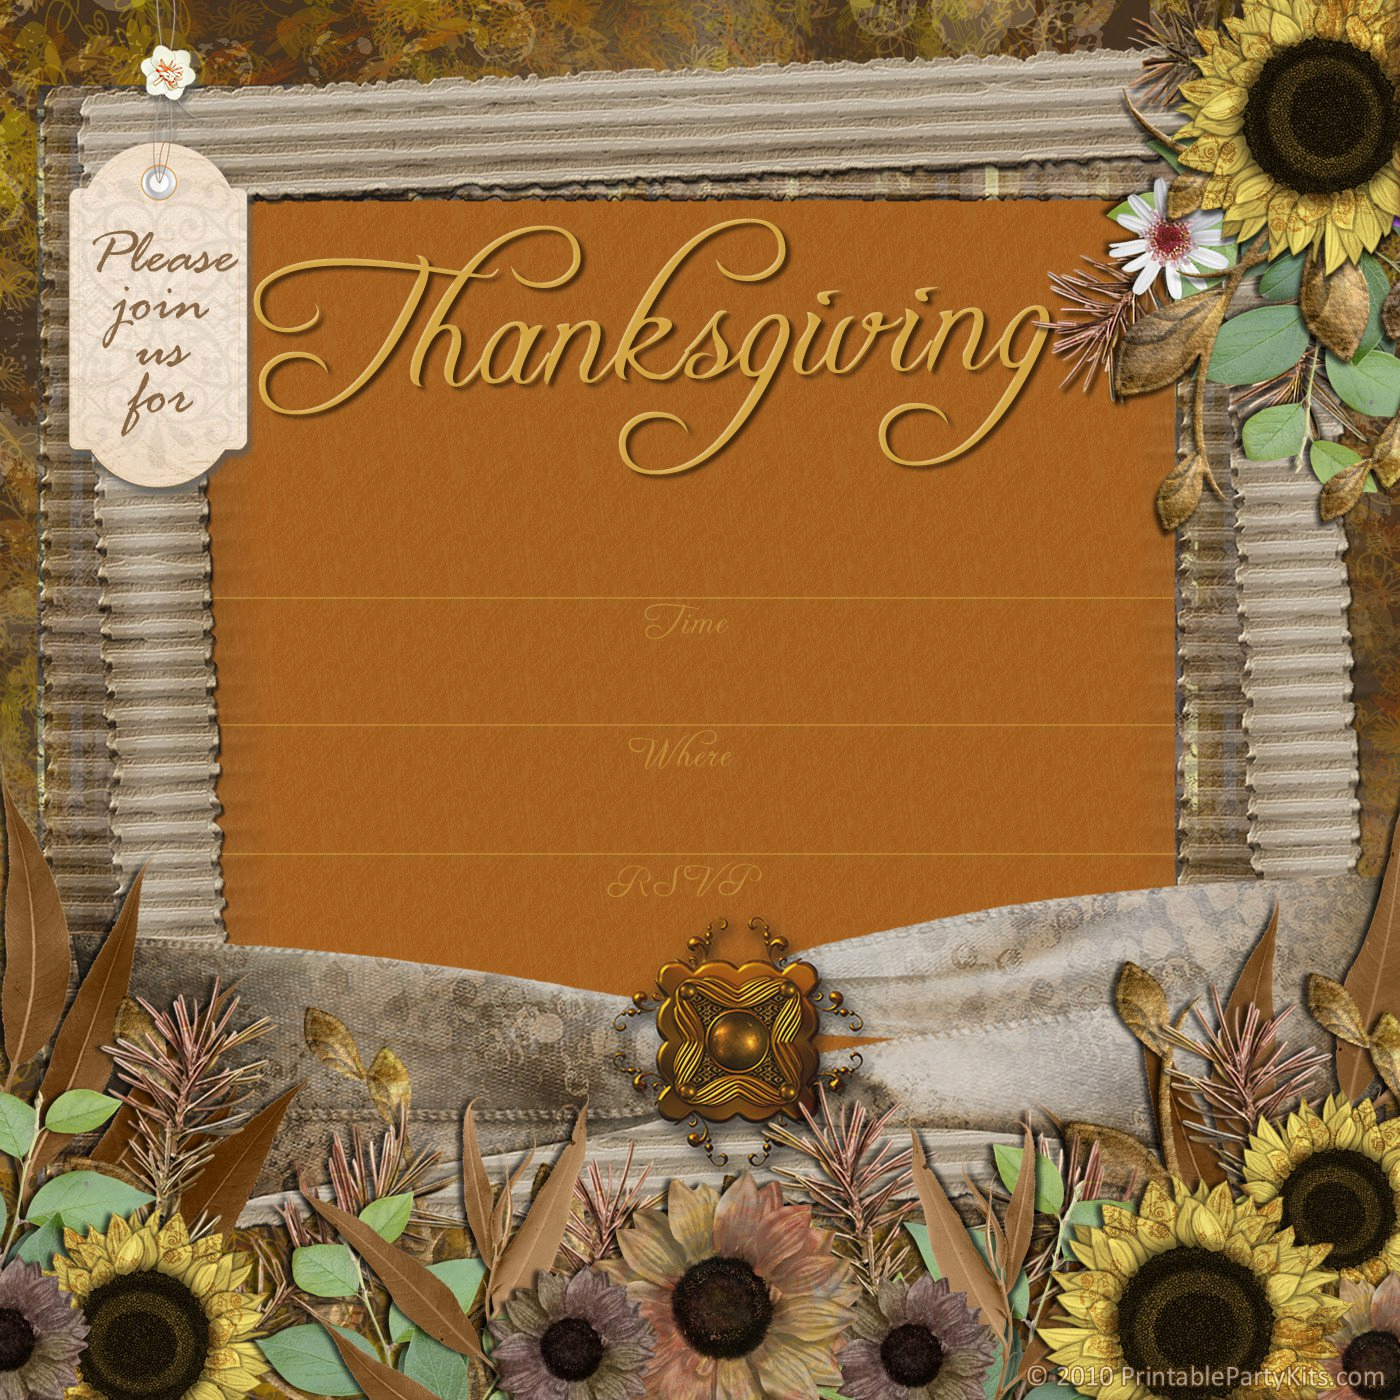 Thanksgiving Invitation Templates Free Word Best Of Thanksgiving Luncheon Invitation